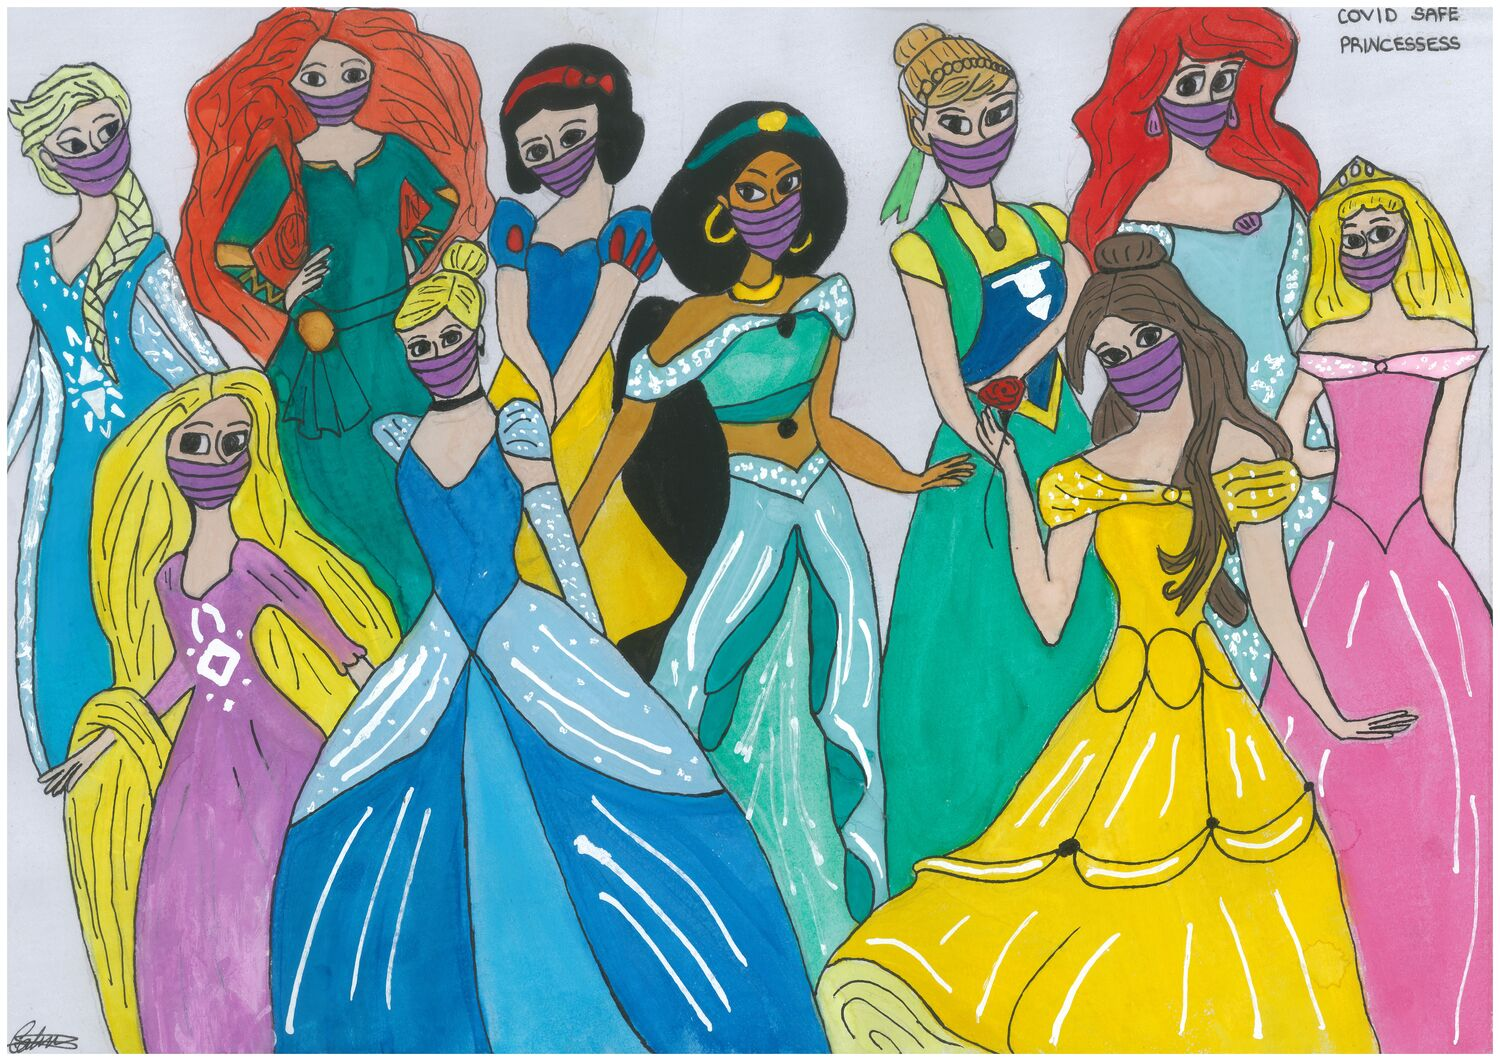 Covid Safe Princesses By Caitlin